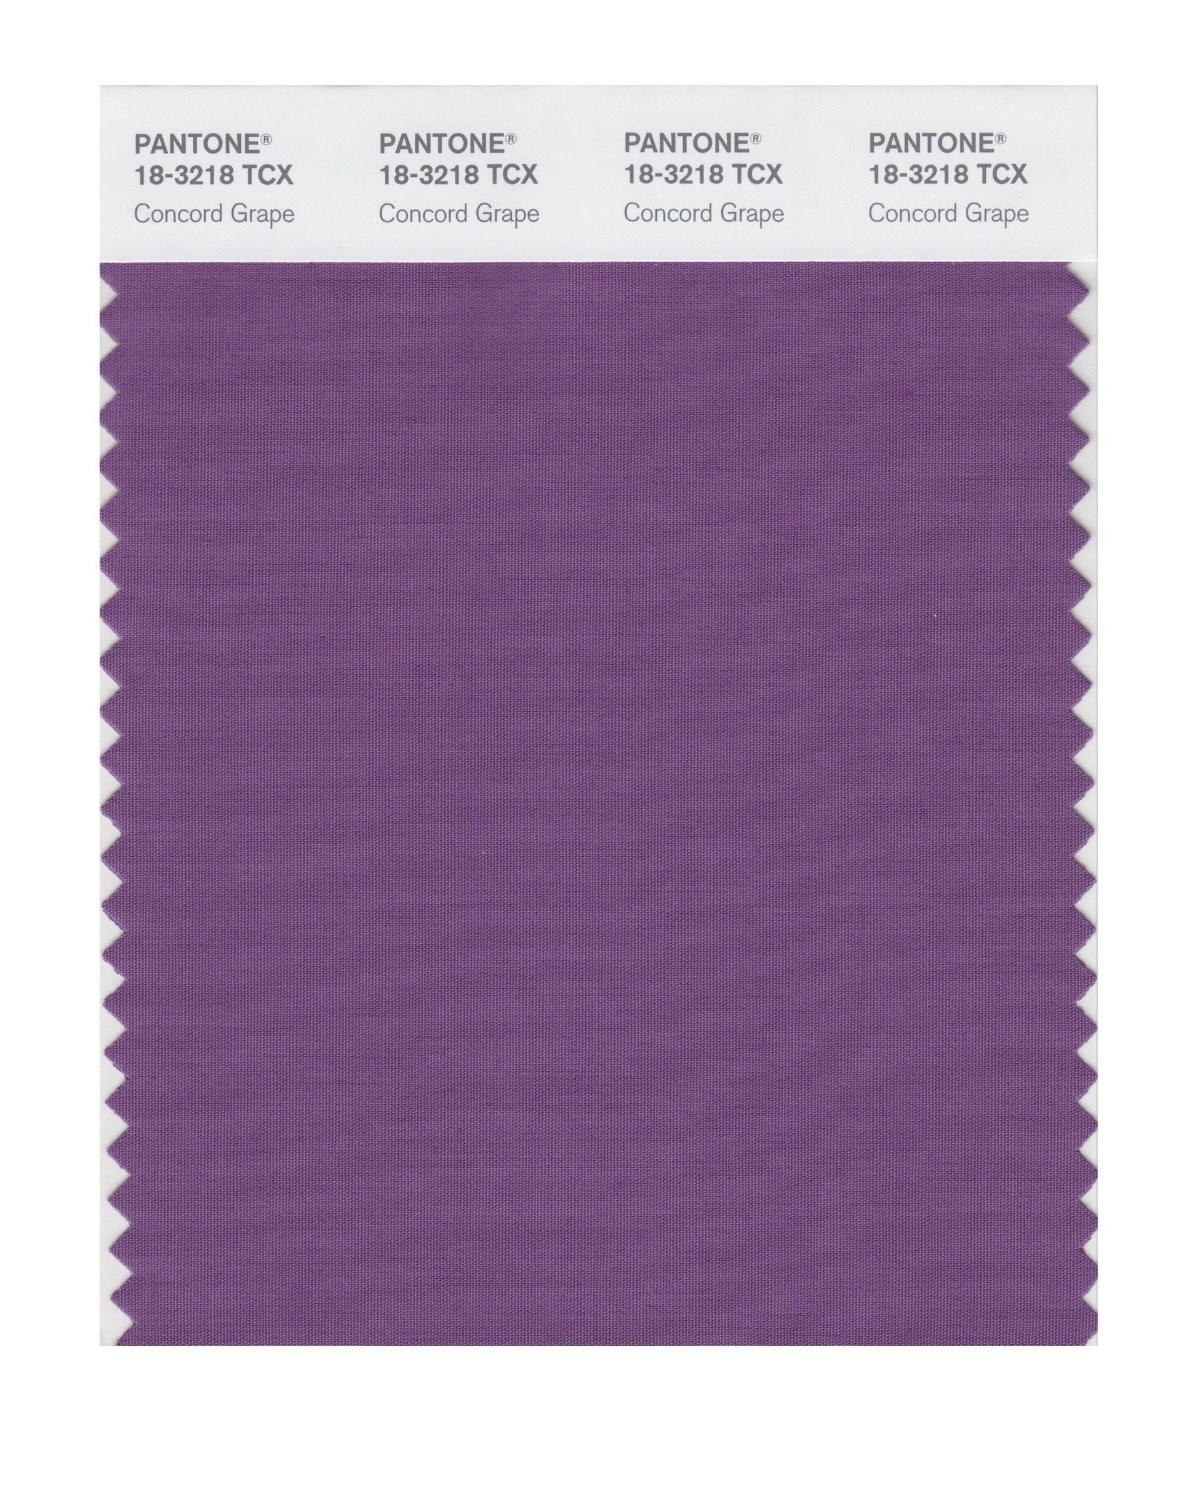 Pantone 18-3218 TCX Swatch Card Concord Grape